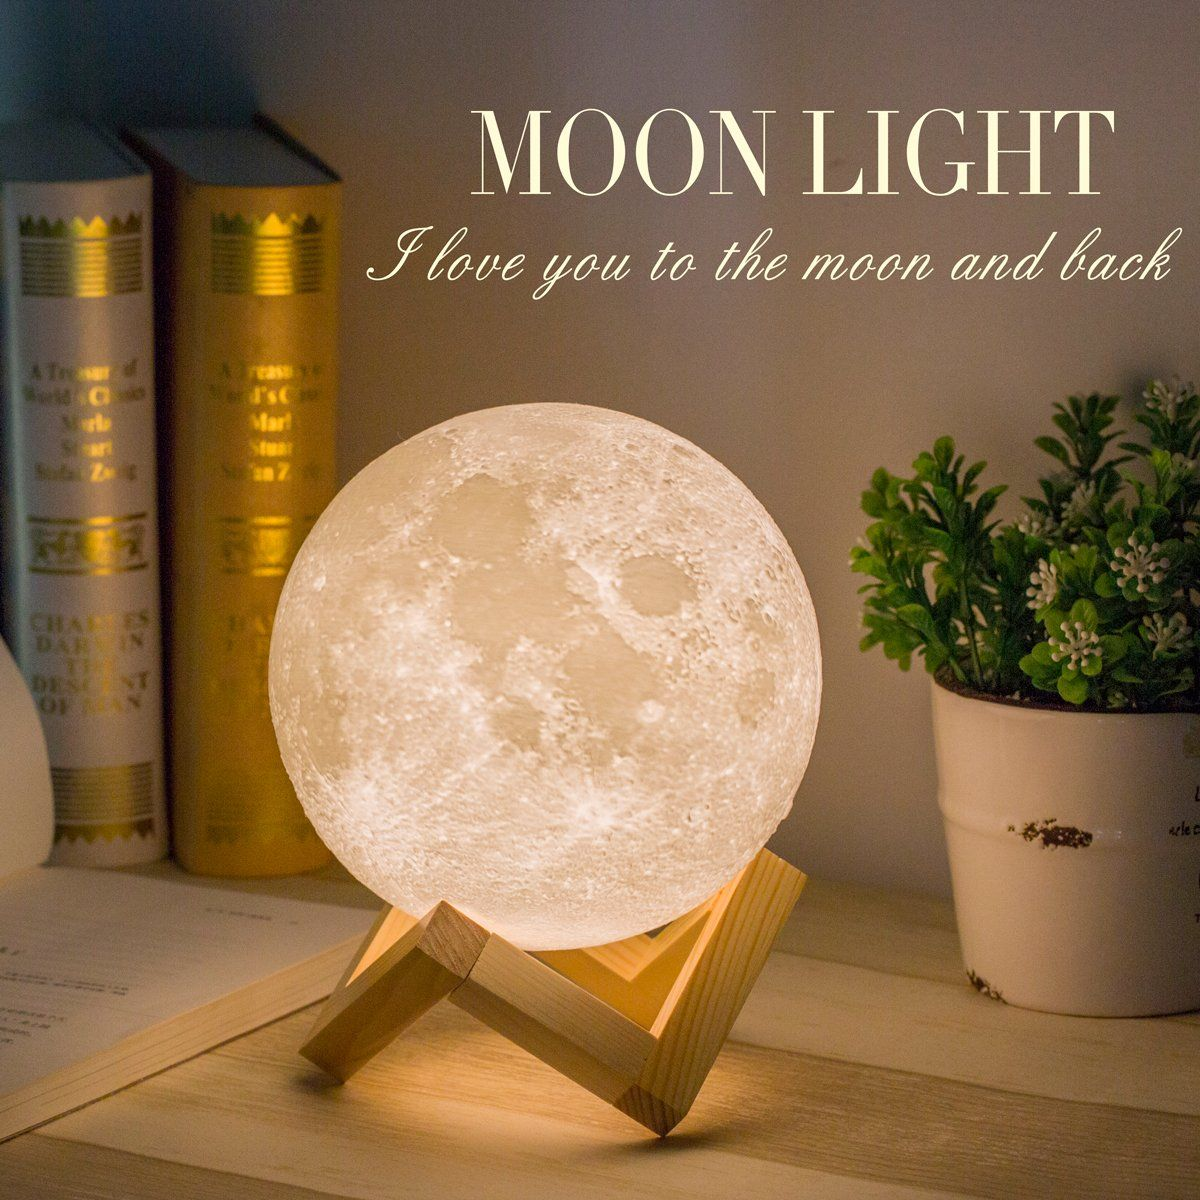 Mydethun moon lamp moon light night light for kids gift for women mydethun moon lamp moon light night light for kids gift for women usb charging and touch arubaitofo Image collections